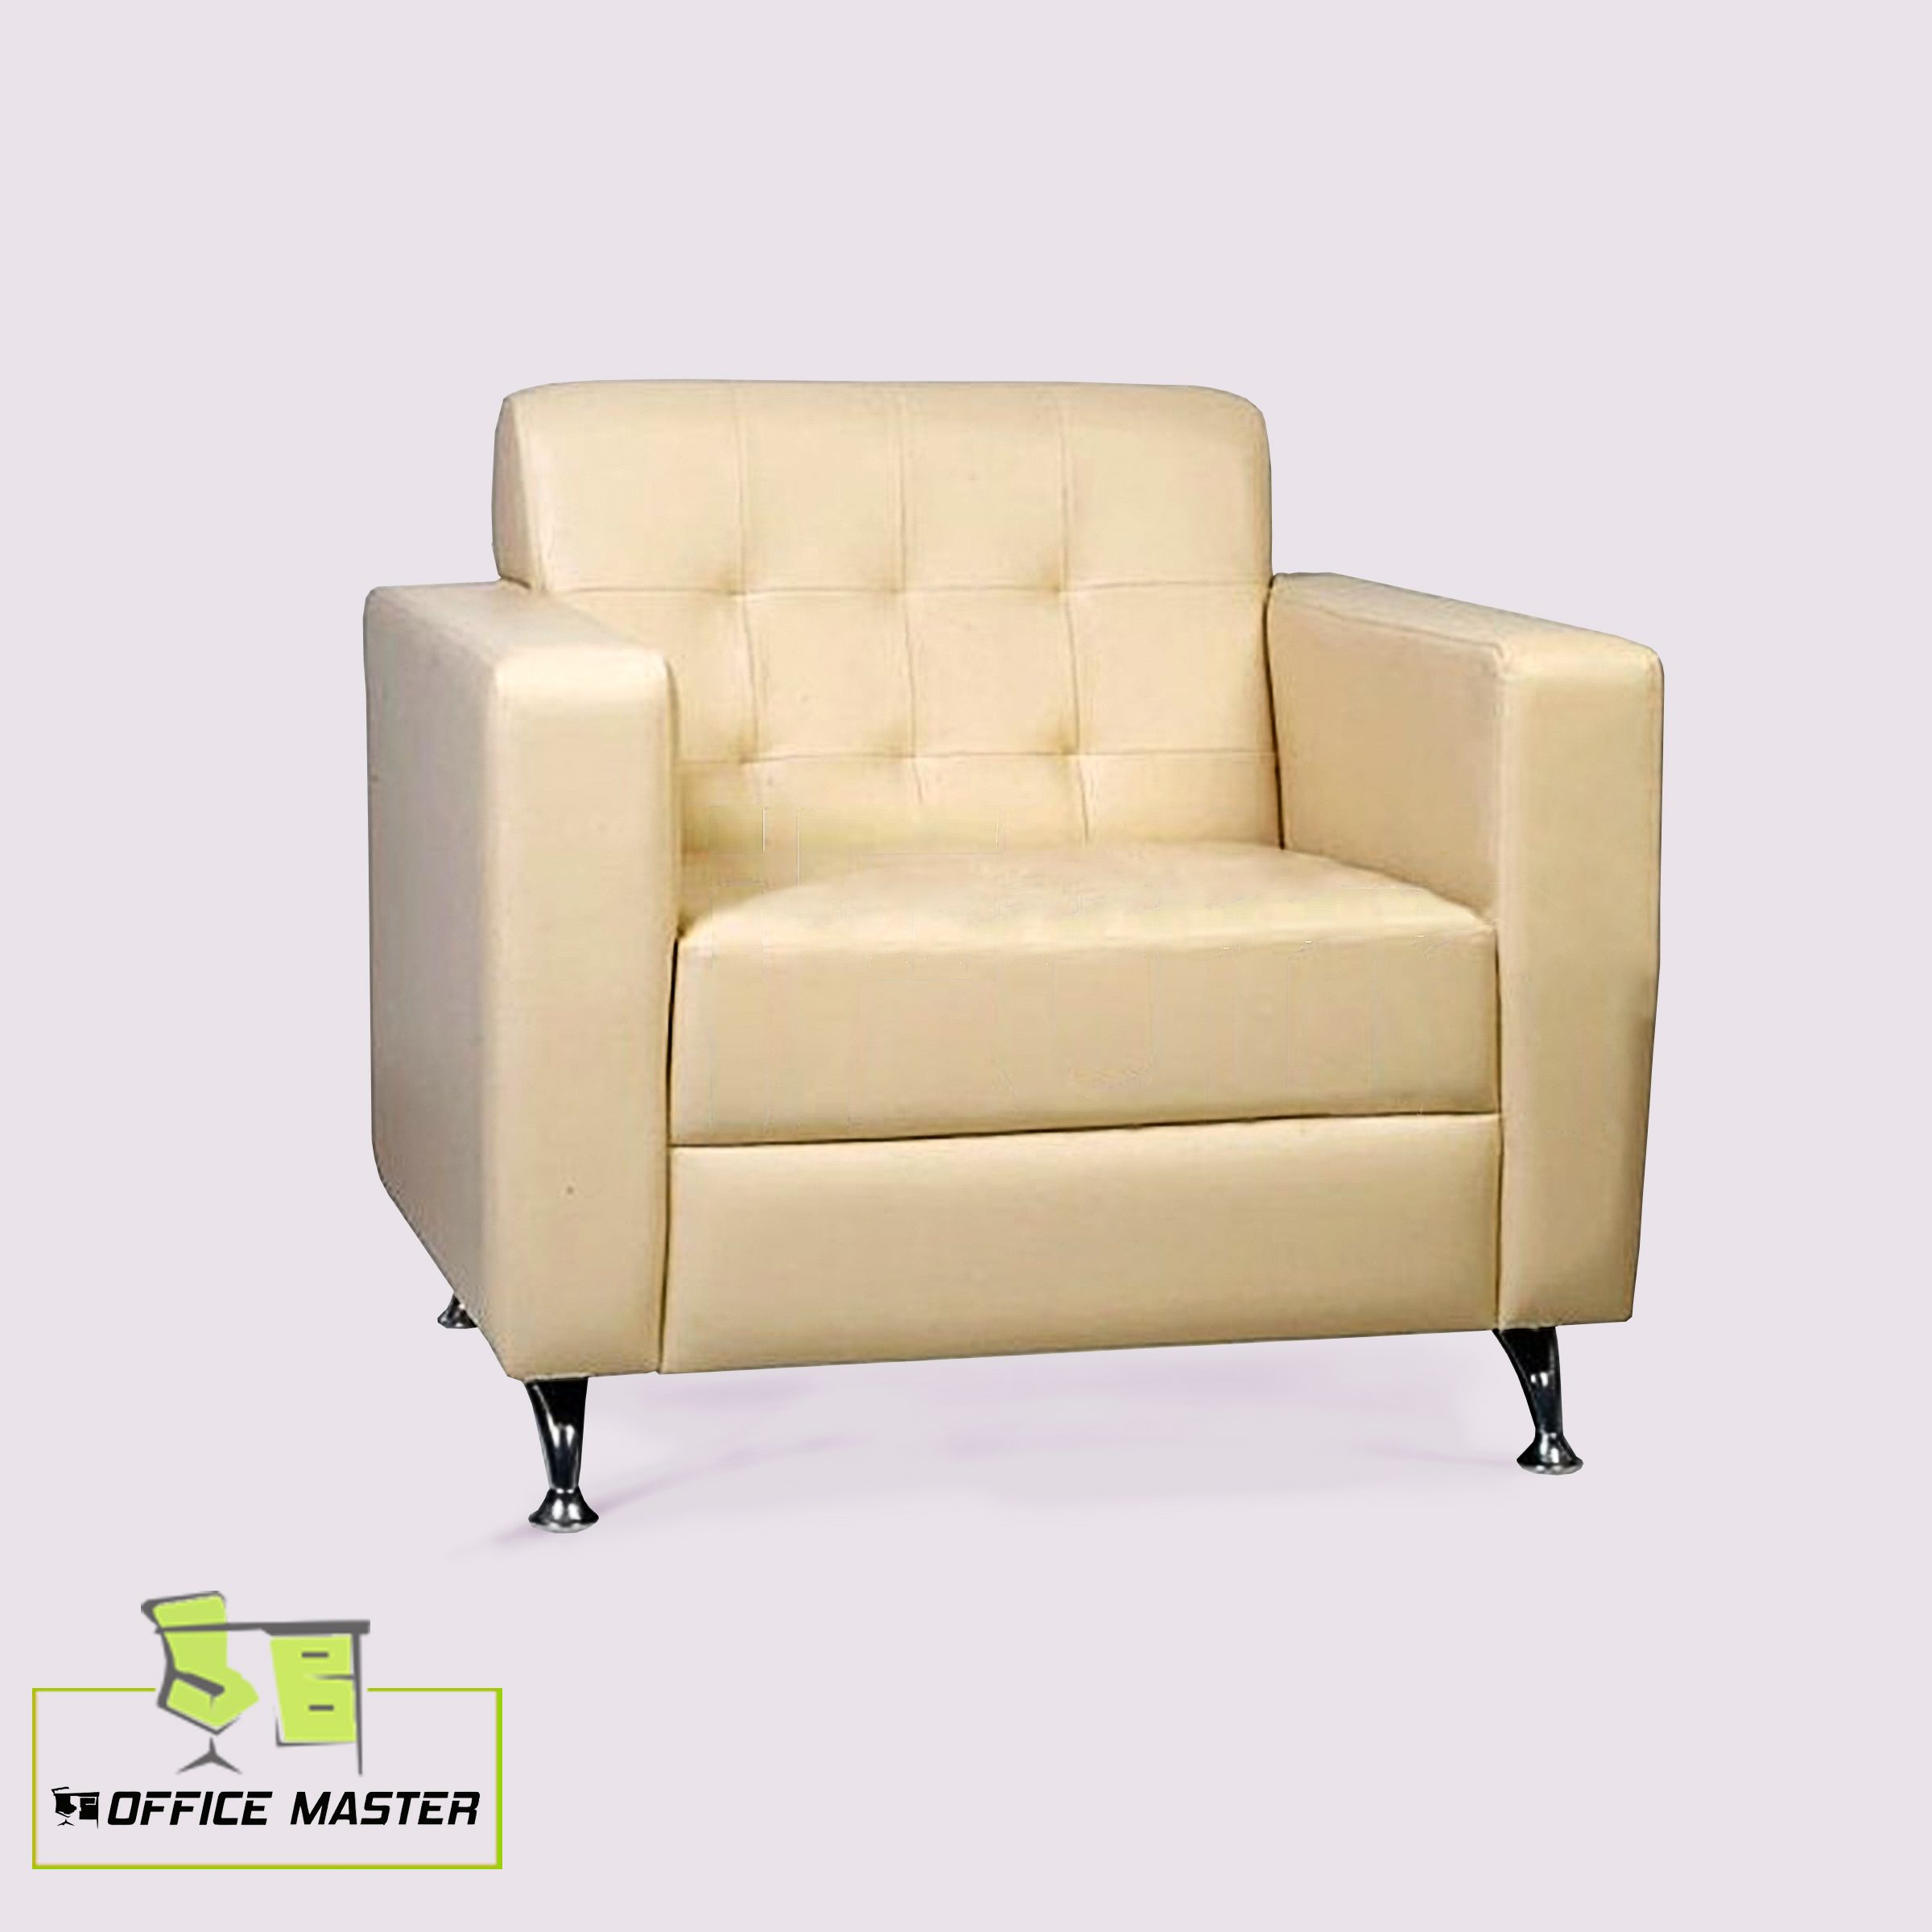 Stella One Seater Sofa Aed 550 00 Exc Tax Custom Made Elegant Chesterfield Backrest Design Lounge Sofa With Eco Leather Ma Seater Sofa Sofa Sofa Online